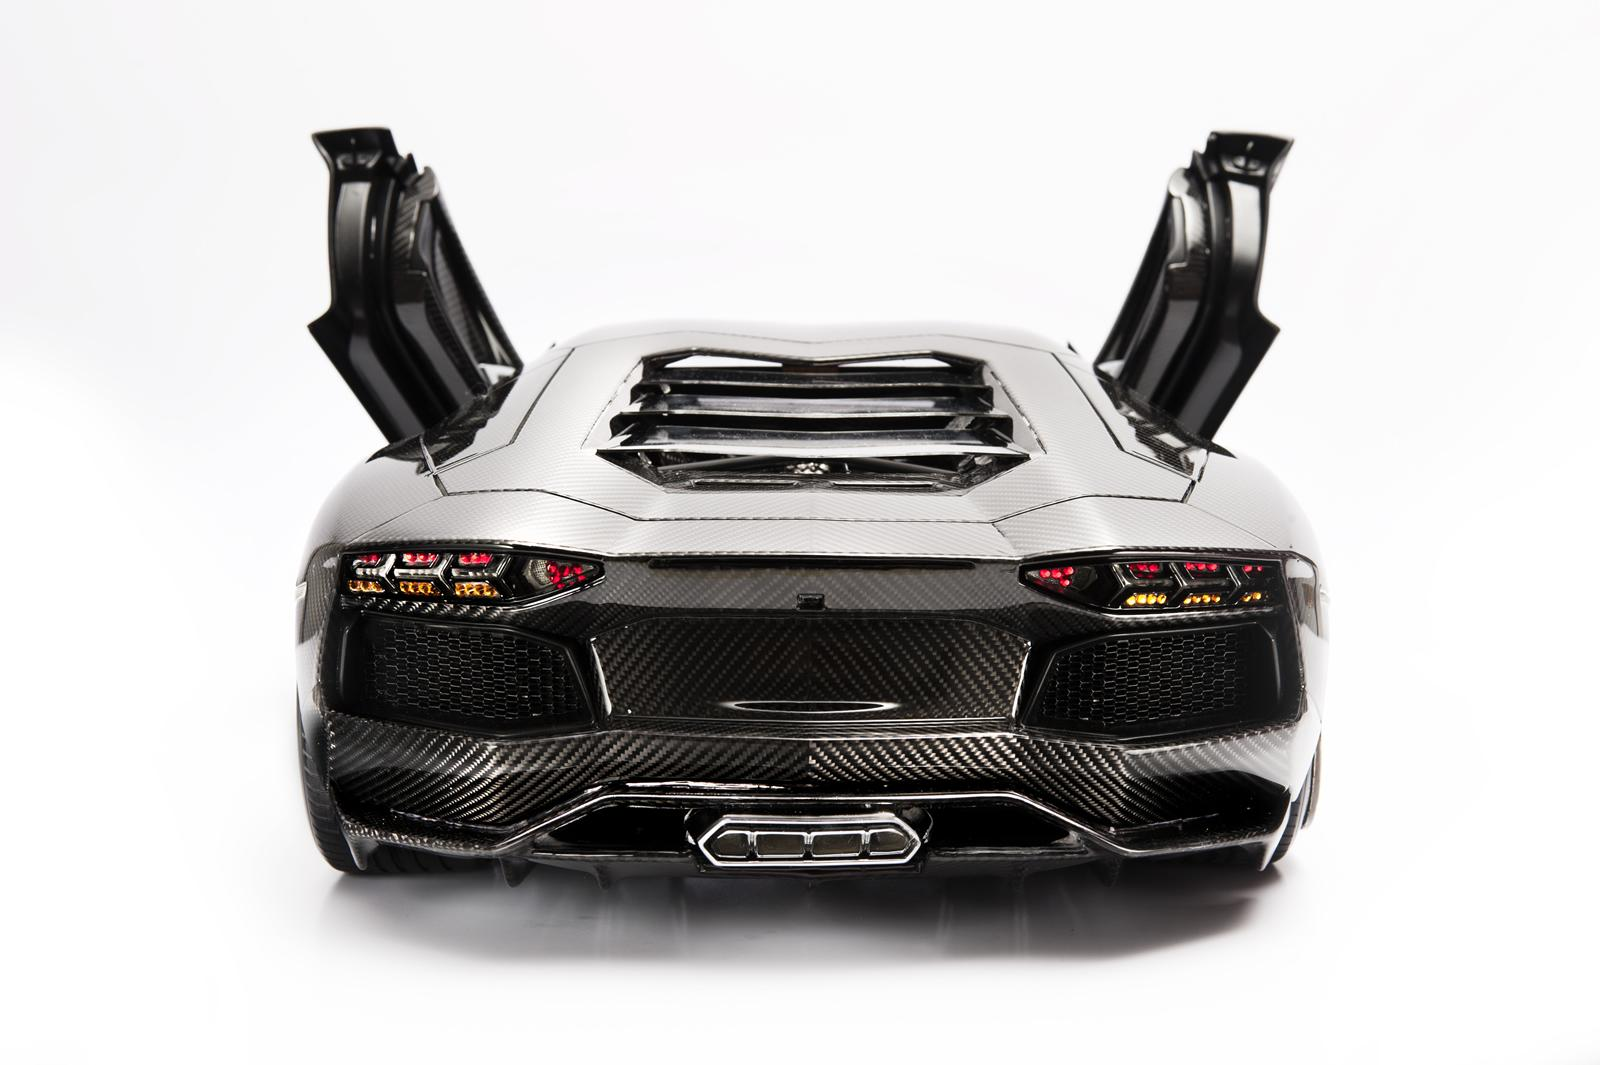 2012 Lamborghini Aventador LP700 4 4 2012 Lamborghini Aventador LP700 4 Car – A Technical Review